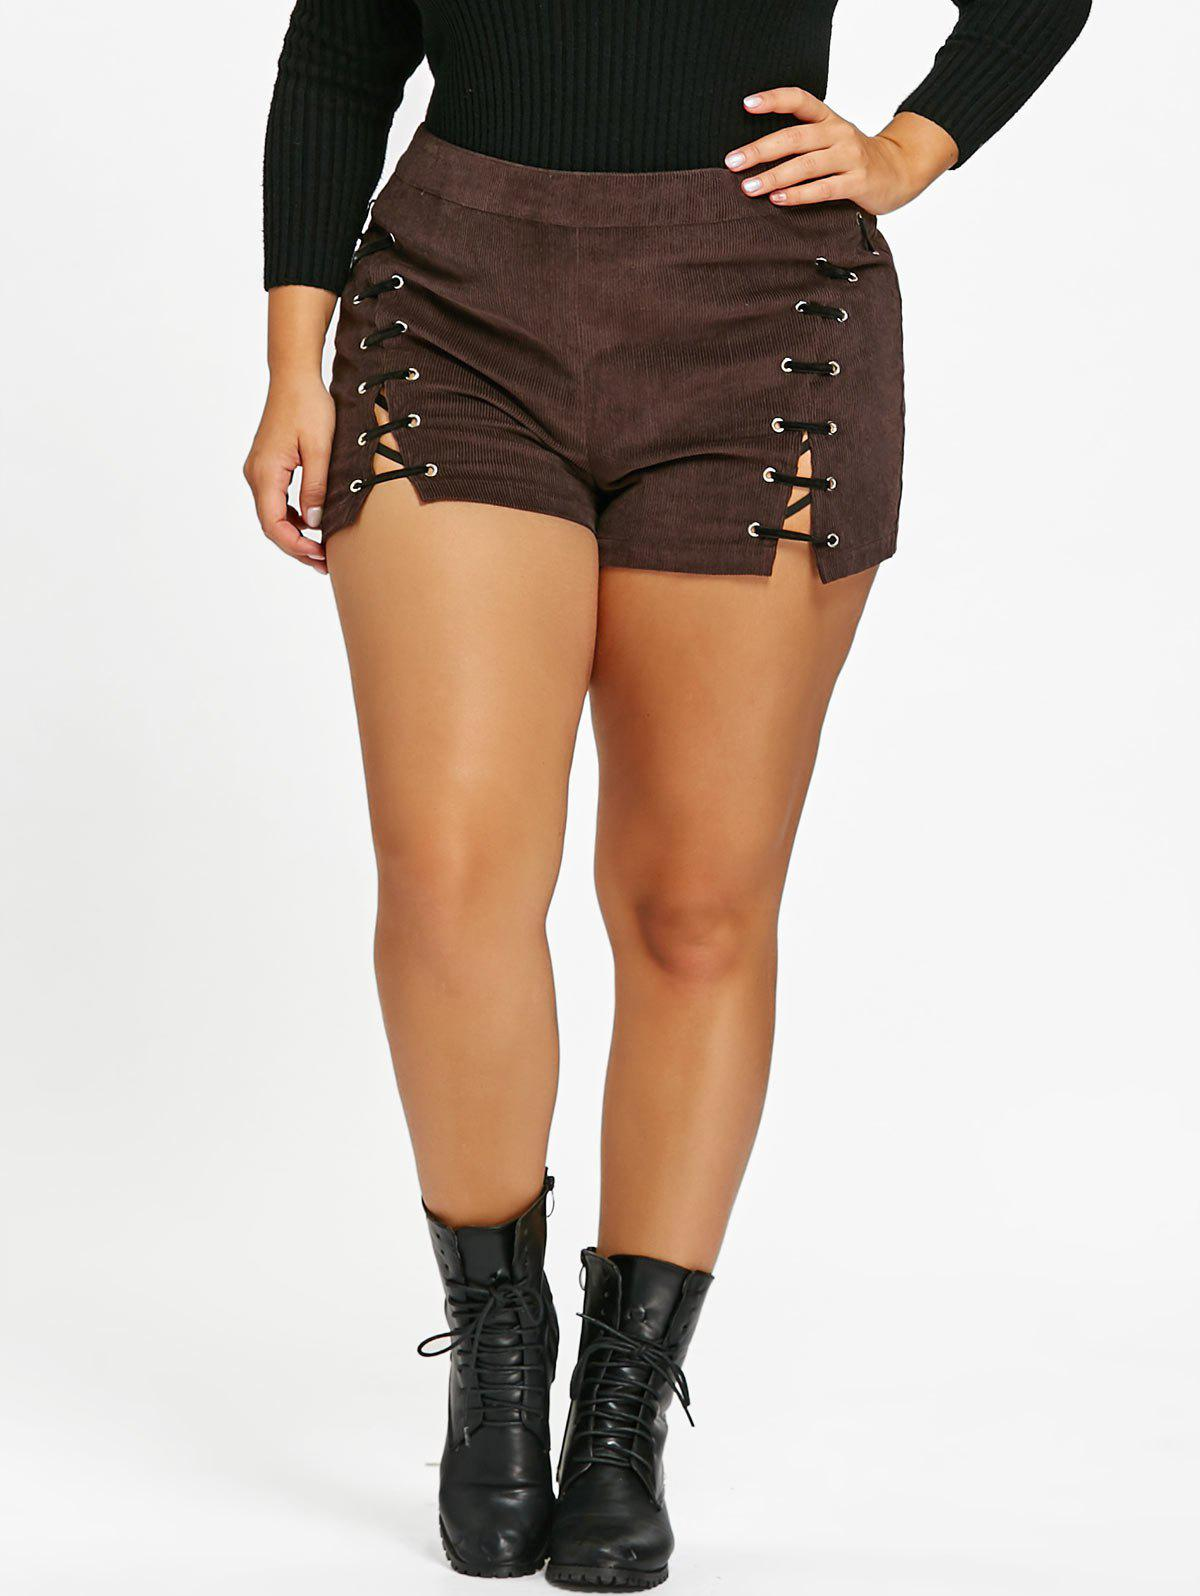 Plus Size Corduroy Slim Lace Up ShortsWOMEN<br><br>Size: 3XL; Color: COFFEE; Style: Fashion; Length: Short; Material: Polyester; Fit Type: Straight; Waist Type: Mid; Closure Type: Zipper Fly; Pattern Type: Solid; Pant Style: Straight; Weight: 0.2500kg; Package Contents: 1 x Shorts;